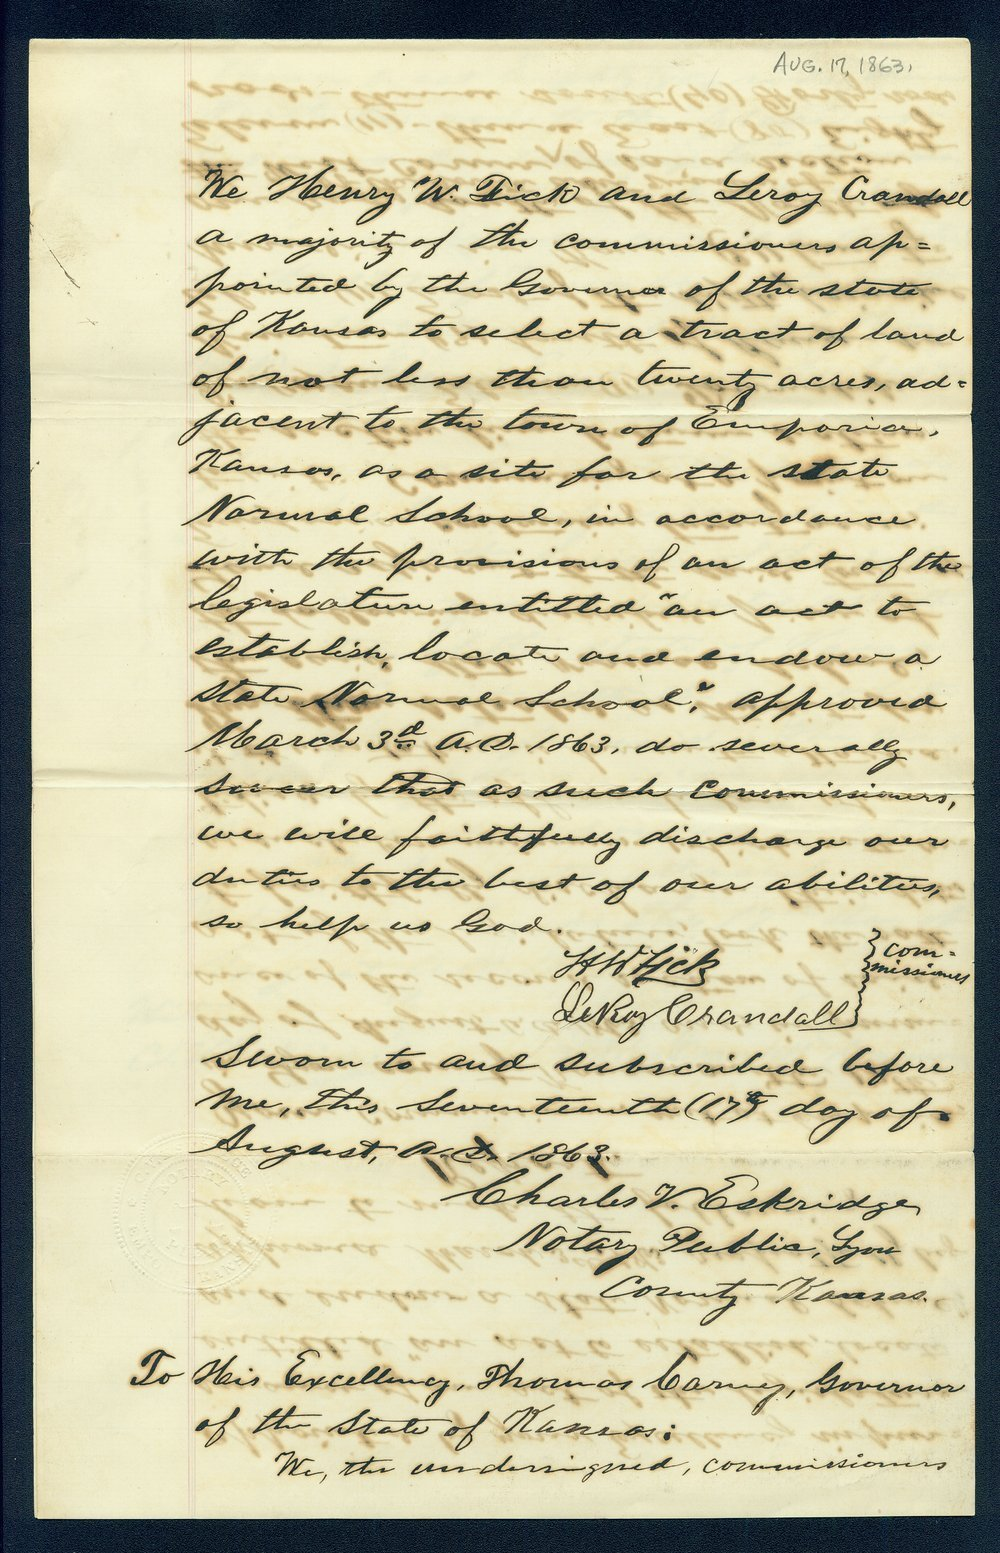 Governor Thomas Carney college and university lands, 1863, correspondence - 10